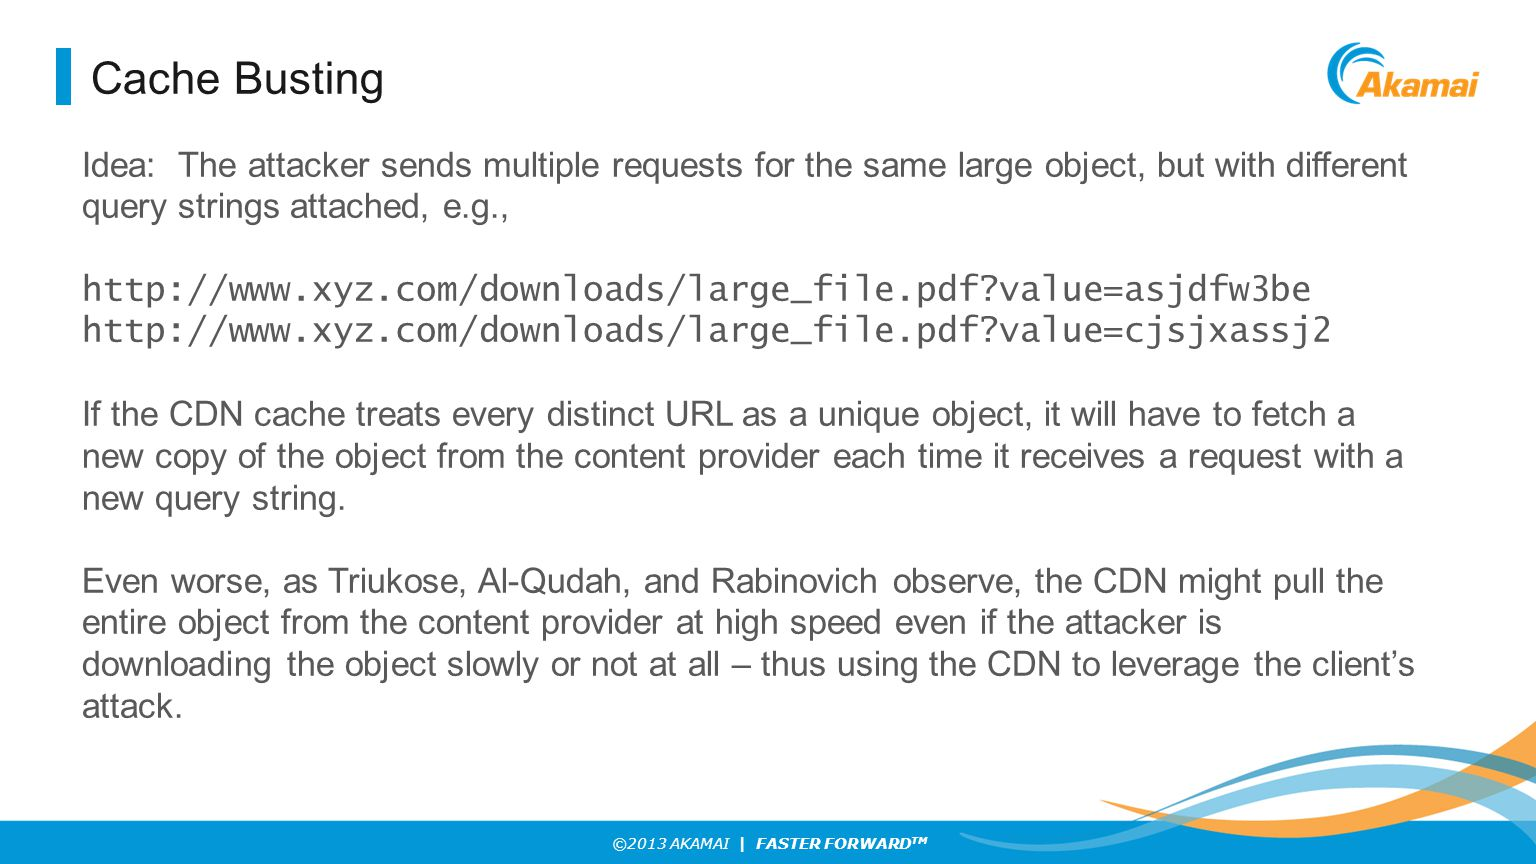 ©2013 AKAMAI | FASTER FORWARD TM Cache Busting Idea: The attacker sends multiple requests for the same large object, but with different query strings attached, e.g., http://www.xyz.com/downloads/large_file.pdf value=asjdfw3be http://www.xyz.com/downloads/large_file.pdf value=cjsjxassj2 If the CDN cache treats every distinct URL as a unique object, it will have to fetch a new copy of the object from the content provider each time it receives a request with a new query string.